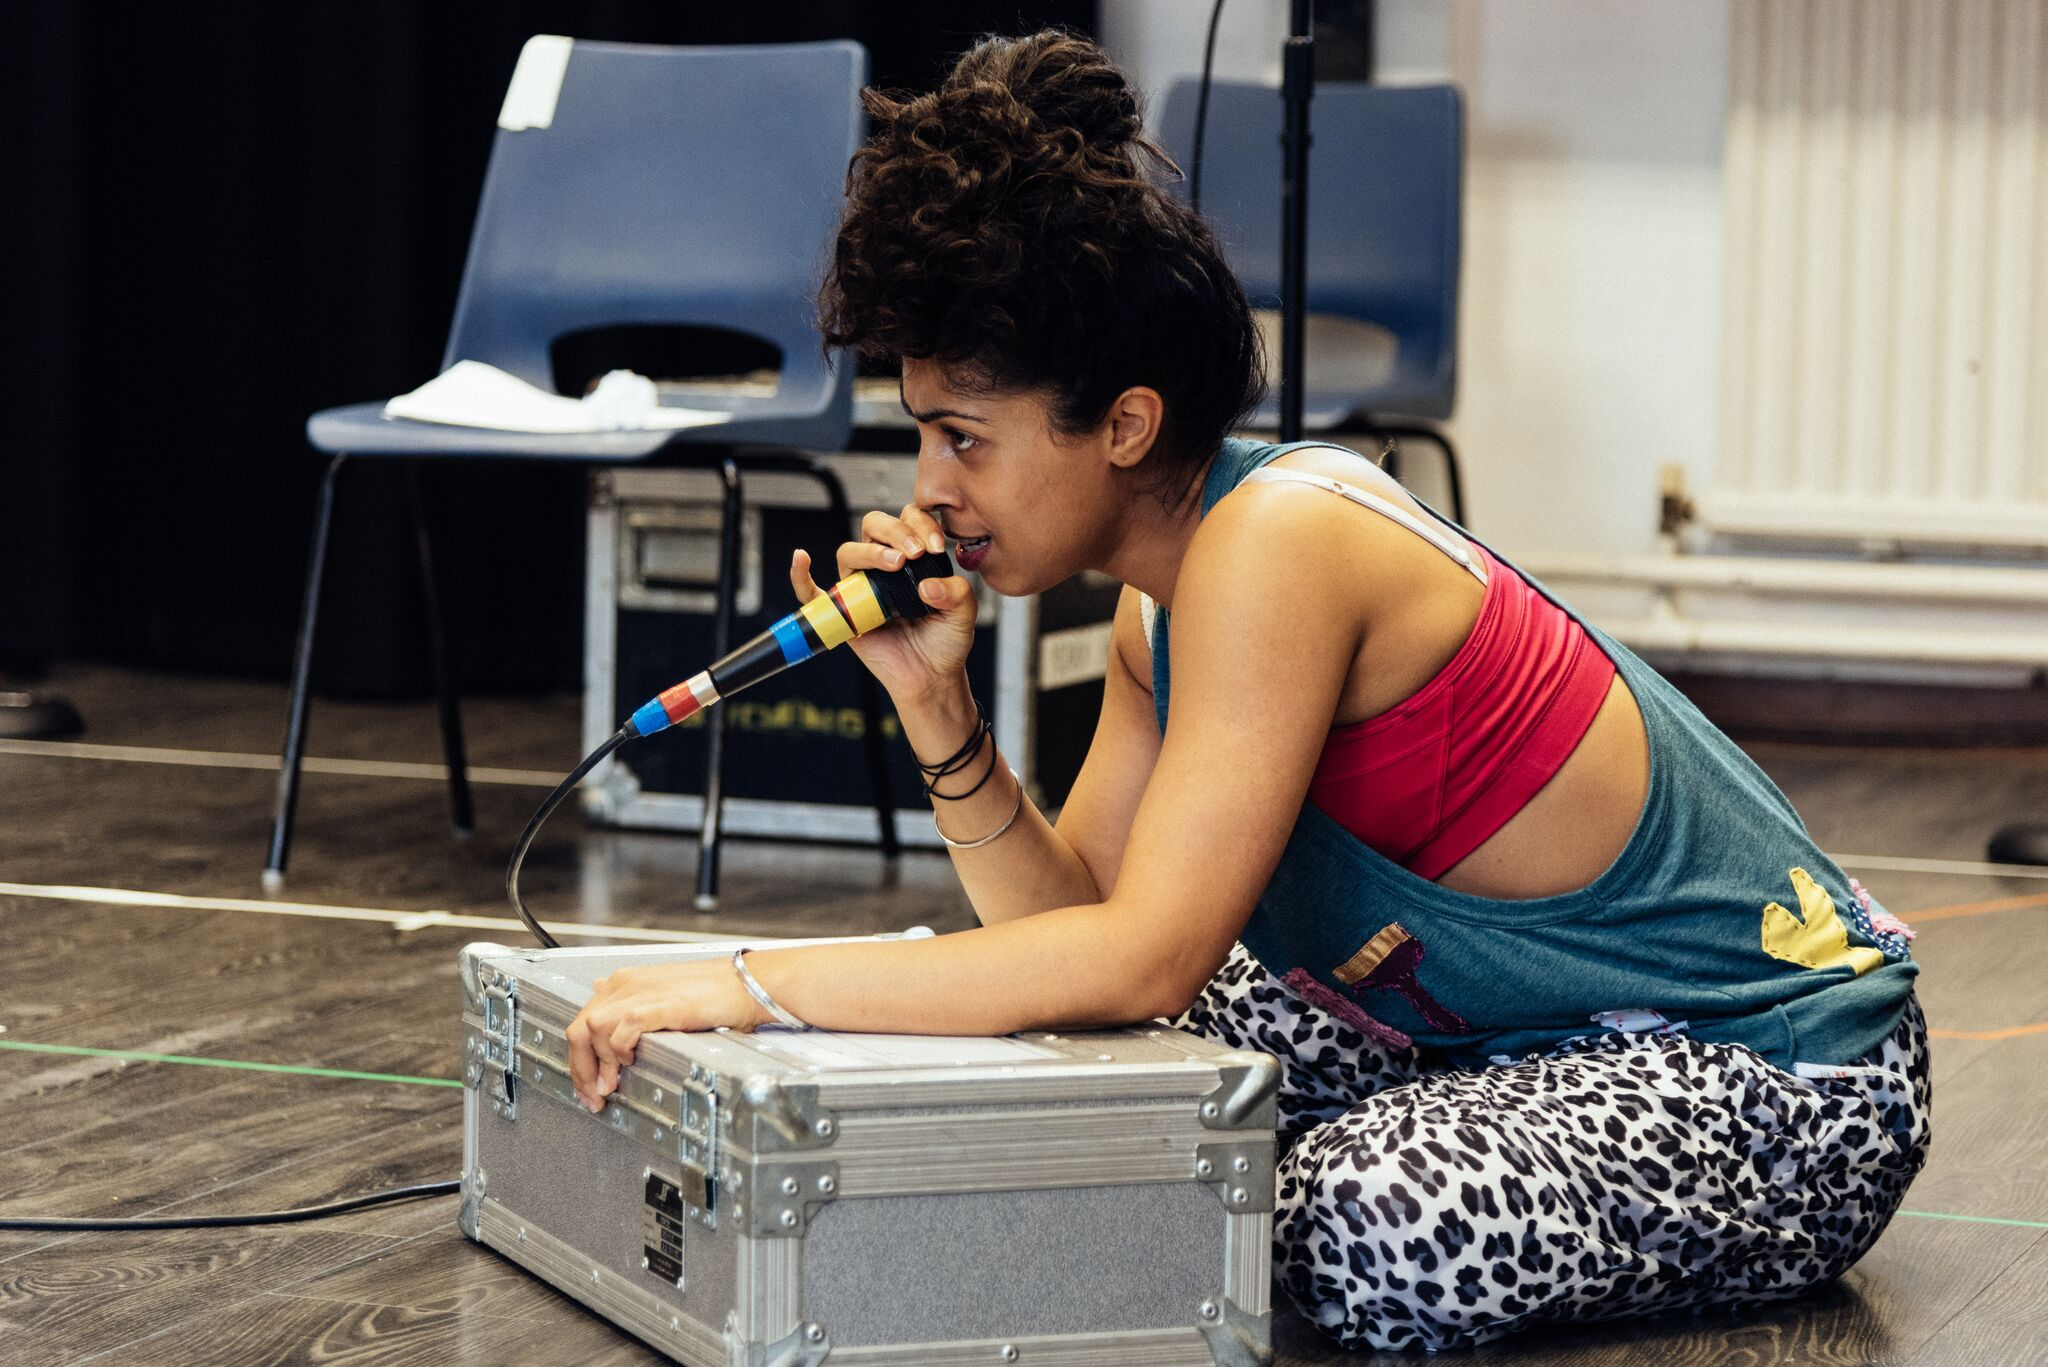 Siobhan Athwal in rehearsals for Wasted the Musical at the Southwark Playhouse. Credit: Oli Sones